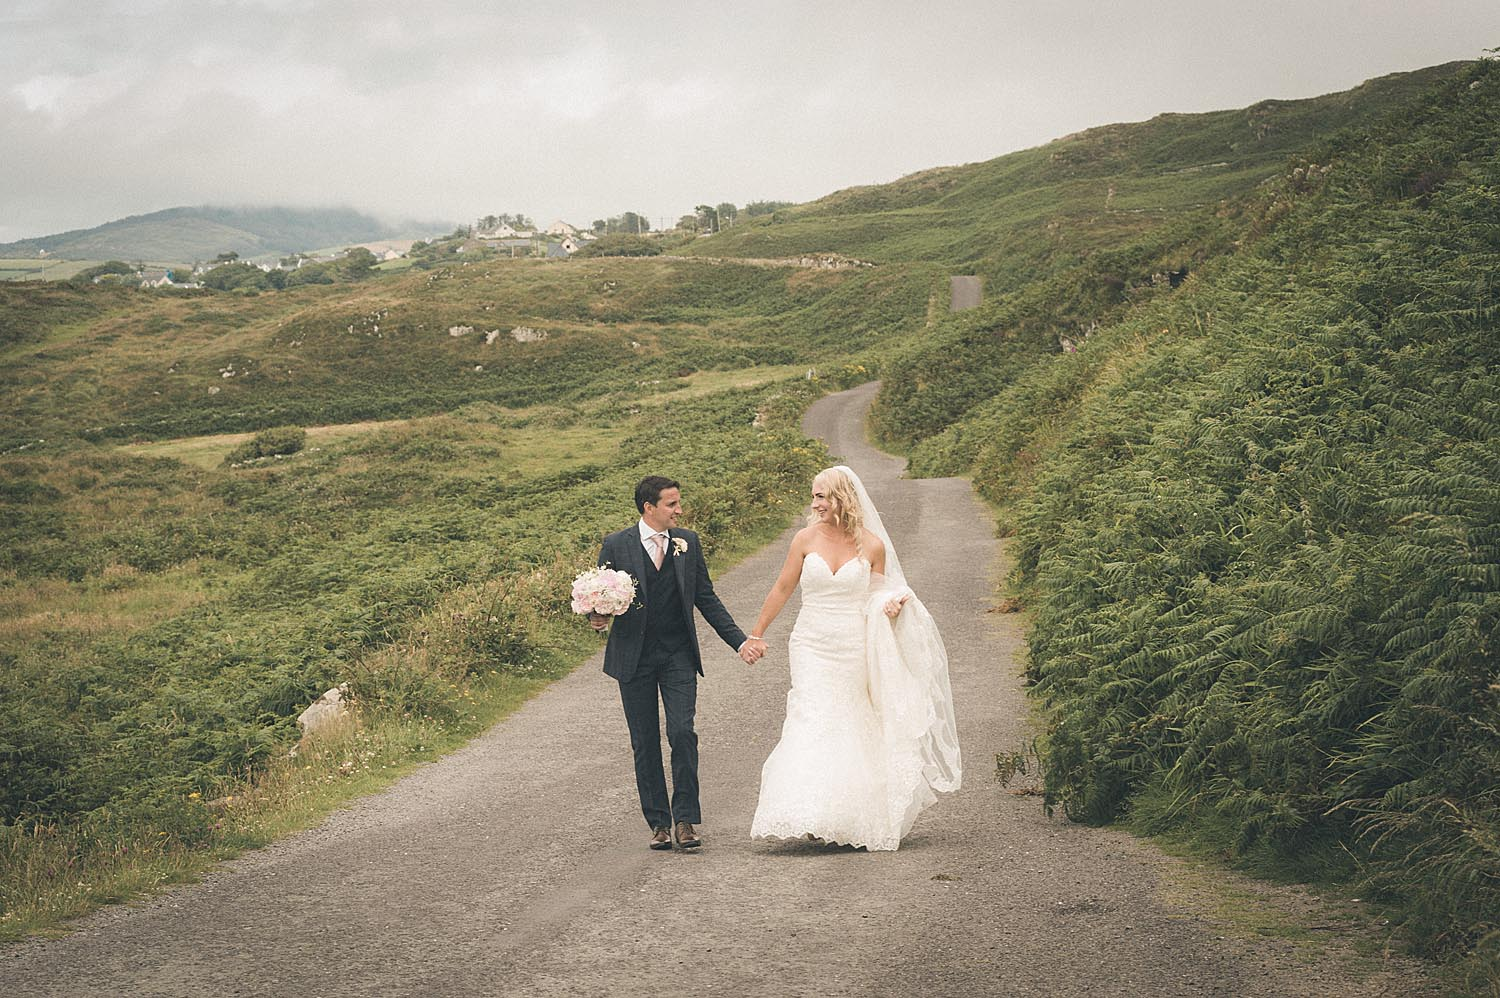 How To Manage Time On A Wedding Day